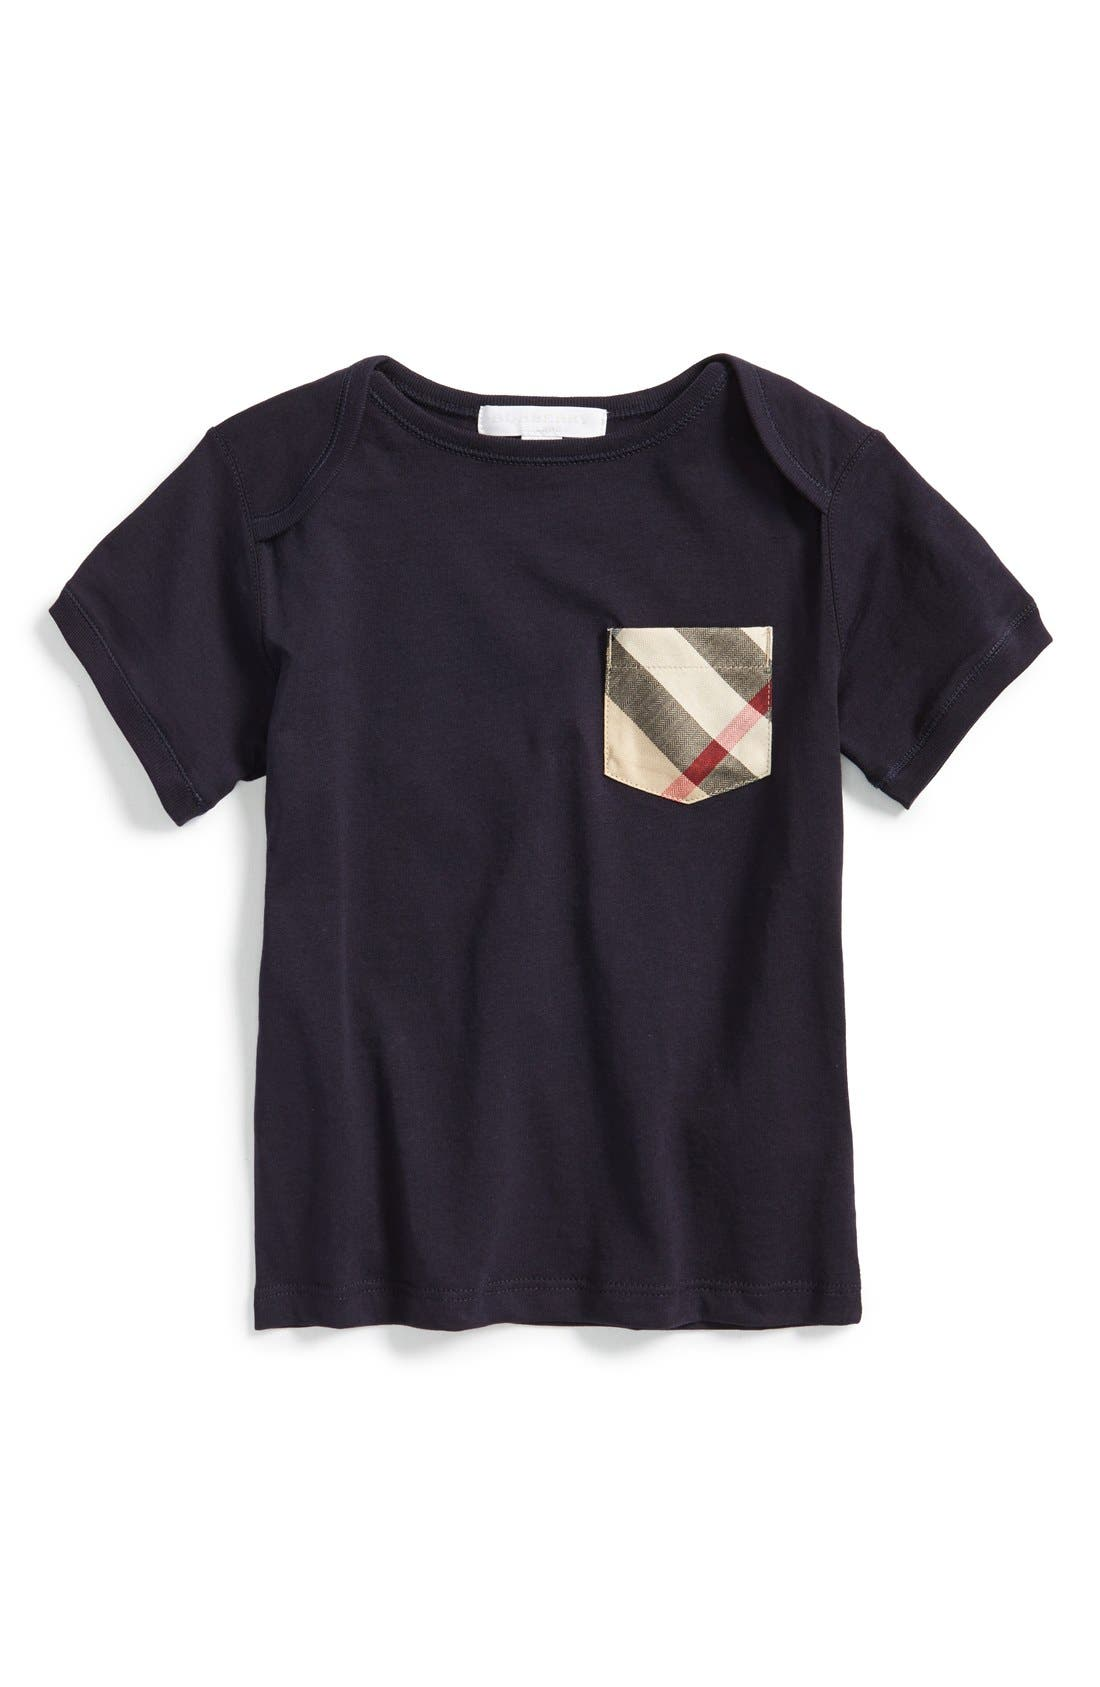 Burberry 'Callum' Check Print Chest Pocket Cotton T-Shirt (Toddler Boys)